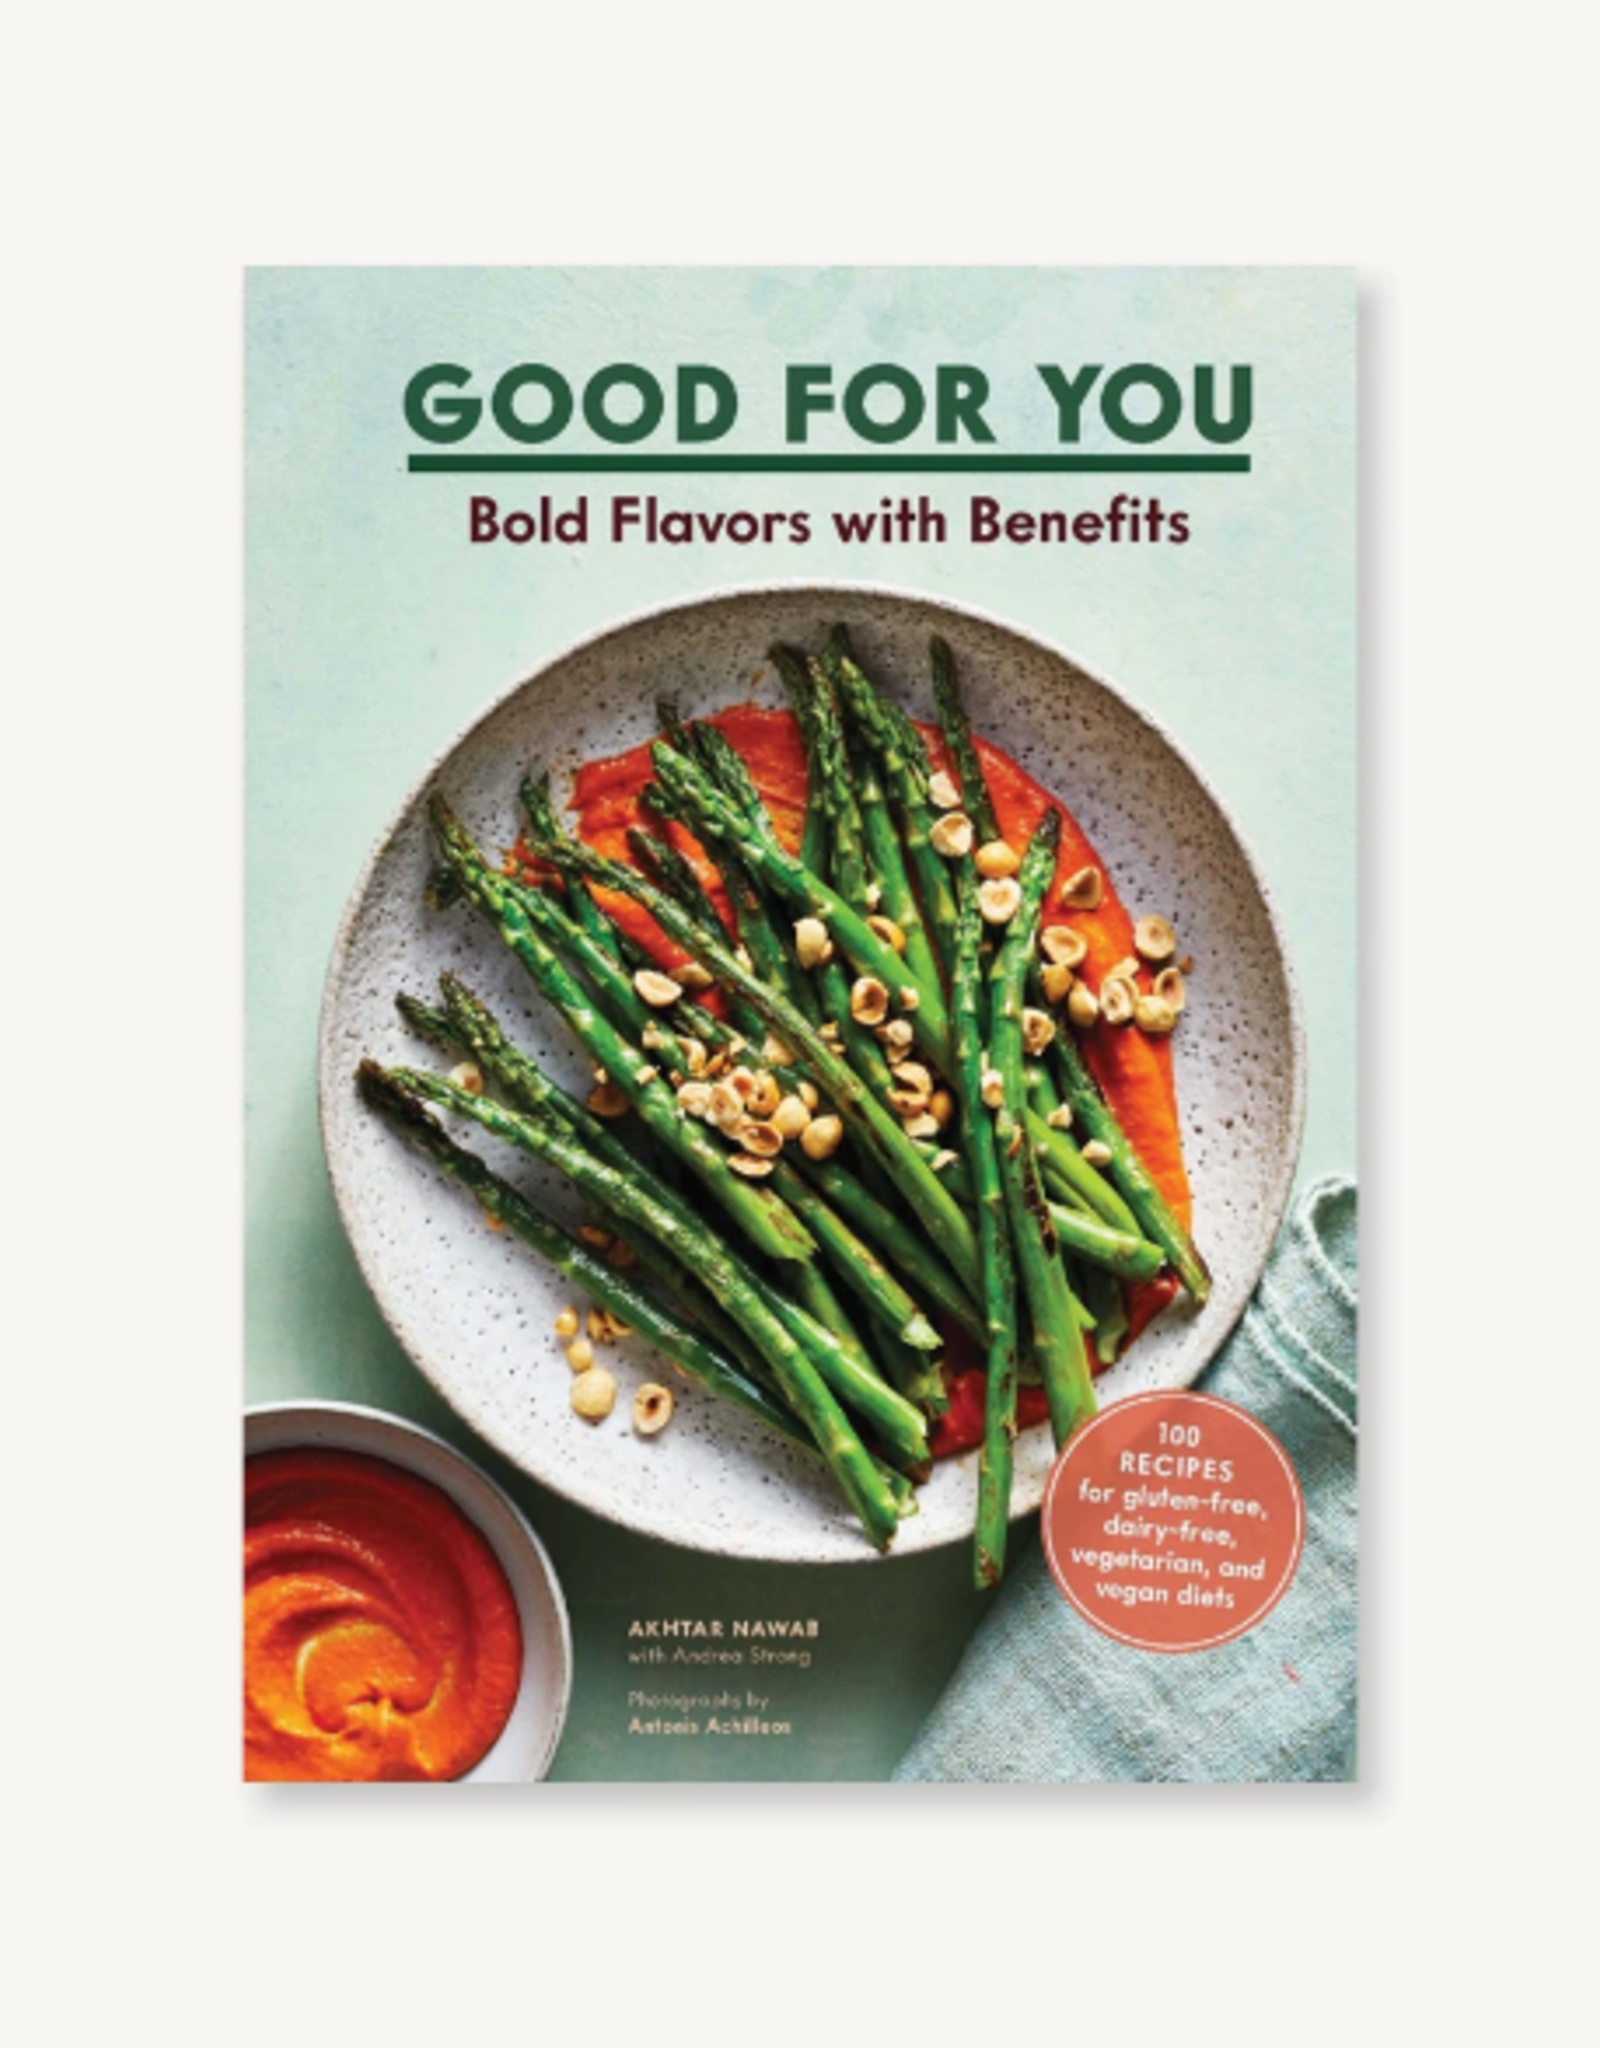 GOOD FOR YOU: BOLD FLAVORS WITH BENEFITS